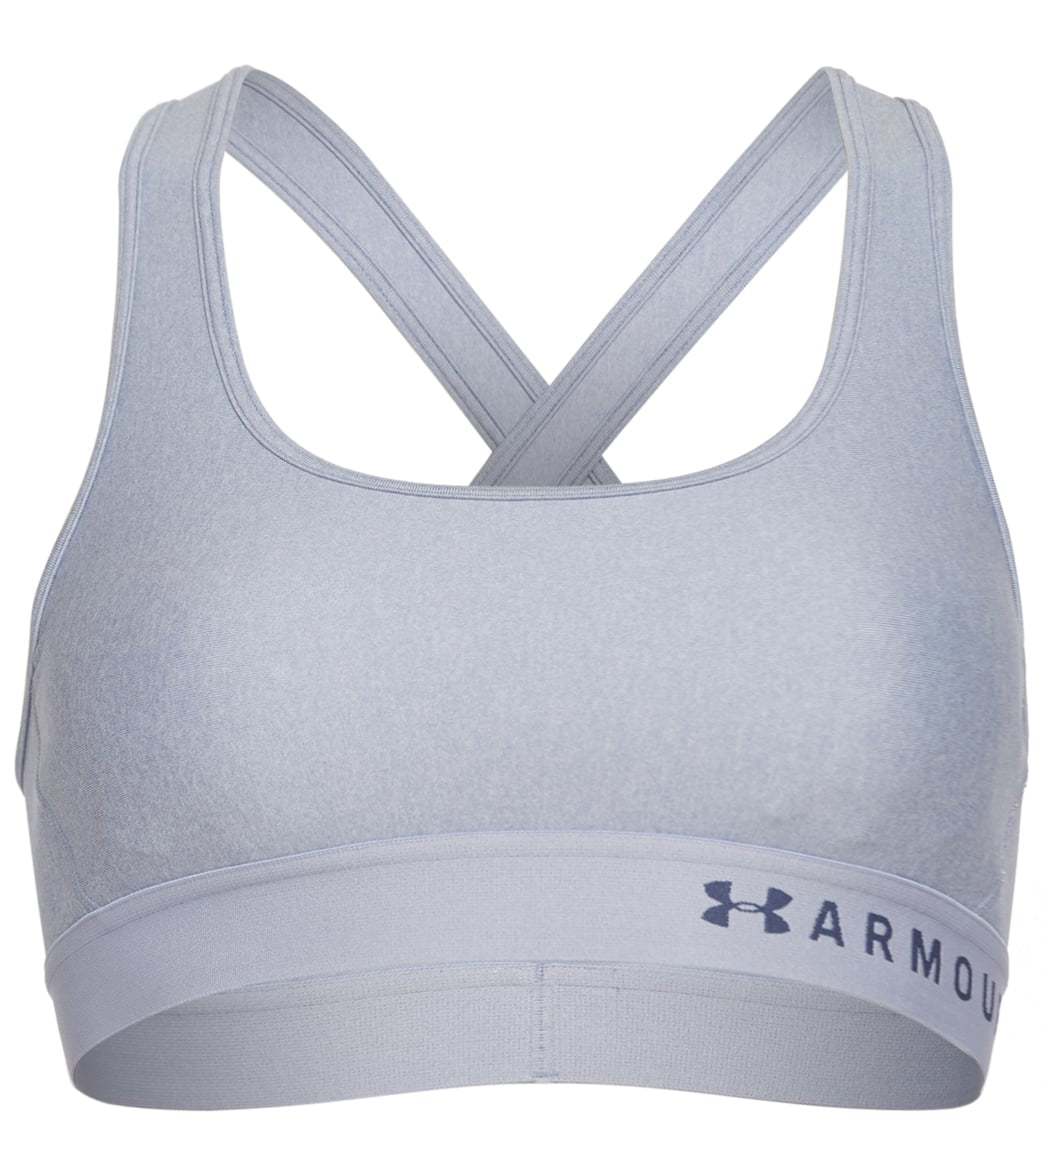 Get active in the Under Armour Women\\\'s Mid Crossback Heather Sports Bra. FeaturesSports bra. Solid with contrast elastic band featuring logo. Strategic support for medium impact. Soft, breathable cups. Removable cups. Crossover straps with keyhole detail. Updated elastic band. Super-smooth, double-layer HeatGear fabric. Material wicks swear & dries really fast. 4-way construction. Best for A to C cups. DetailsFabric: 87% Polyester, 13% Elastane. Care: Machine washable. Closure: Pull over. Back S